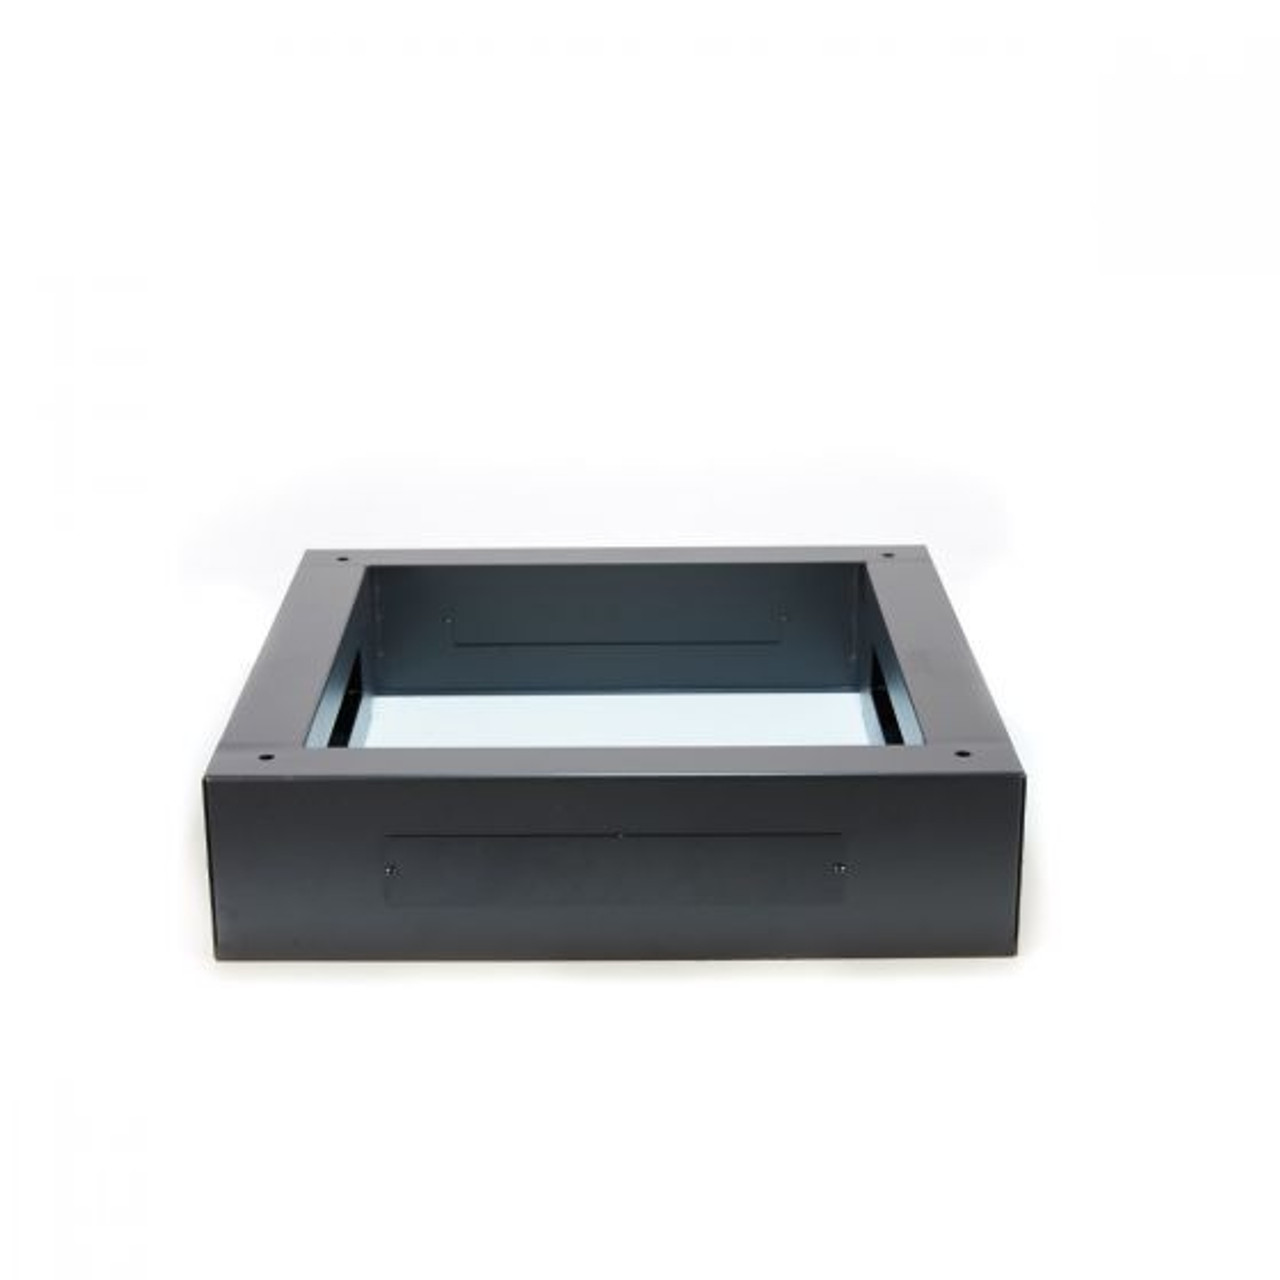 4Cabling 150mm High Floor Mount Plinth Suitable for 800mm x 800mm